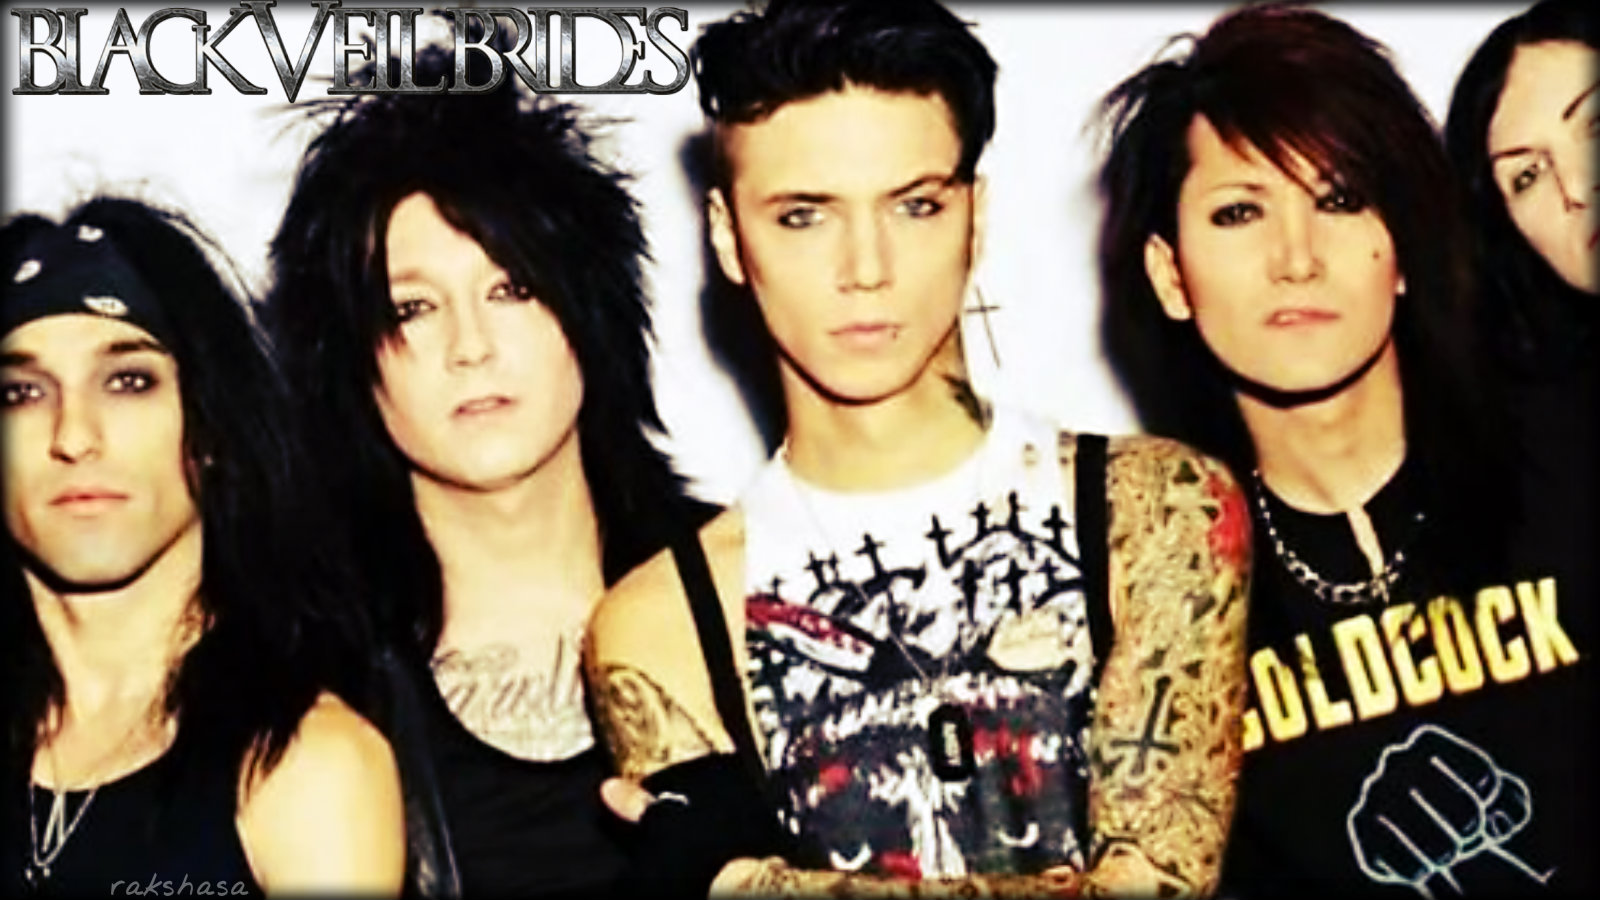 <b>Black Veil Brides 2015</b> Wallpapers - <b>Wallpaper</b> Cave